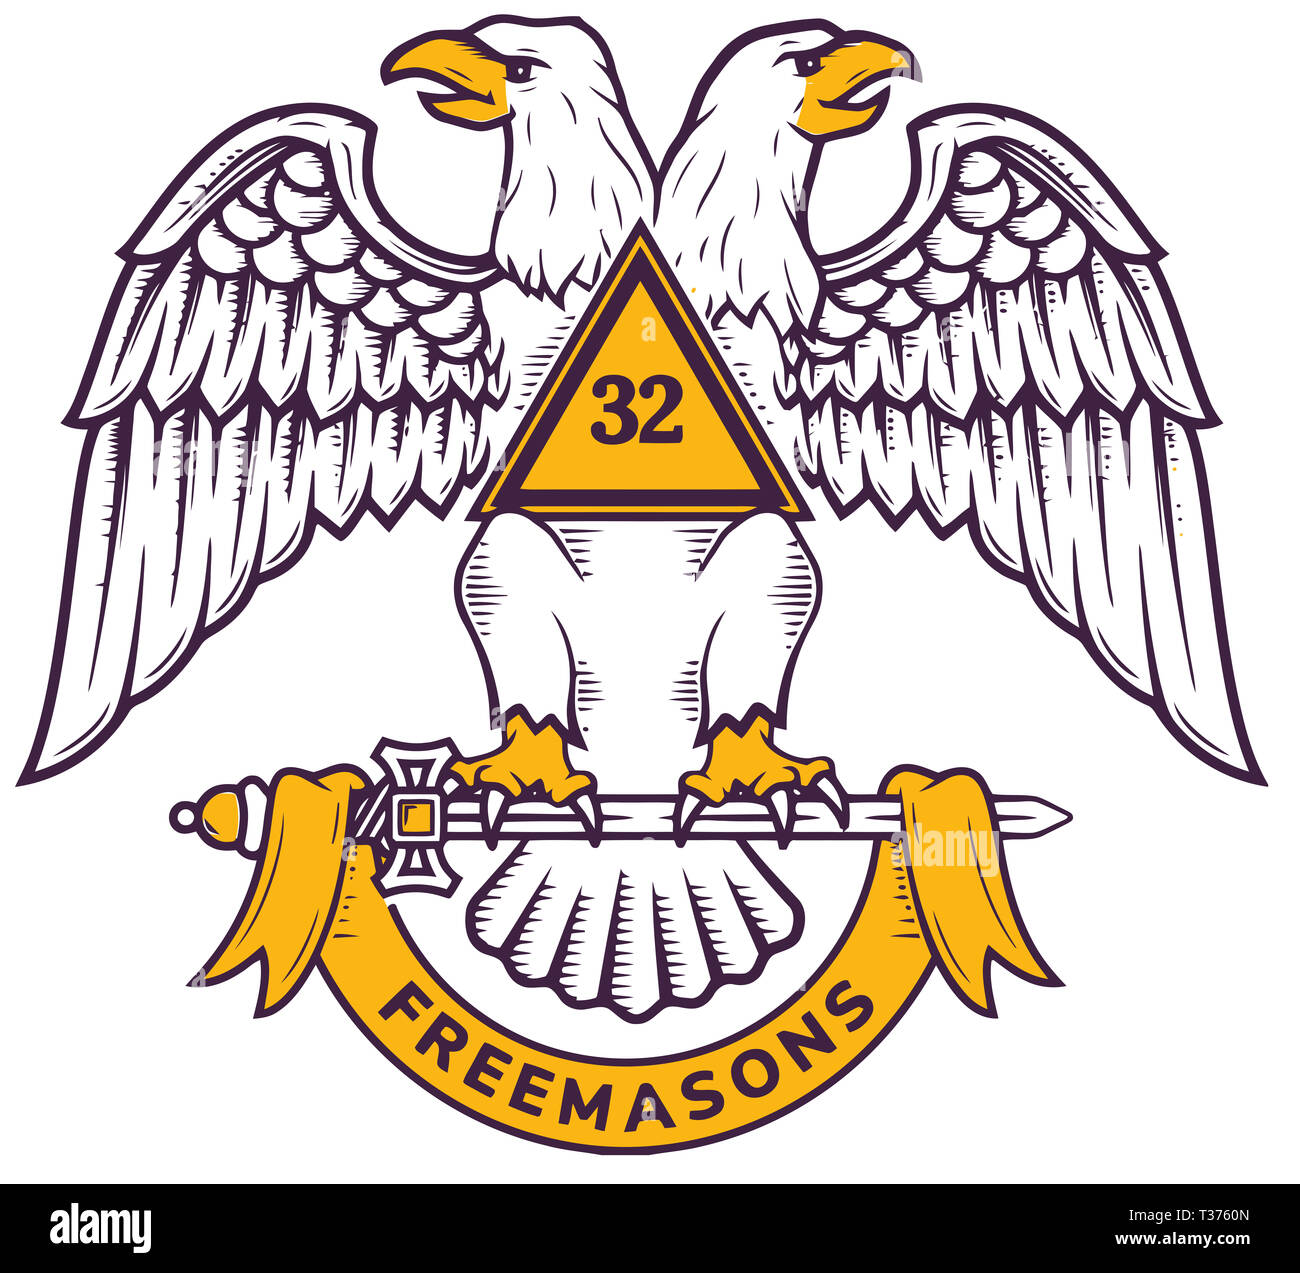 Master Mason Stock Photos & Master Mason Stock Images - Alamy